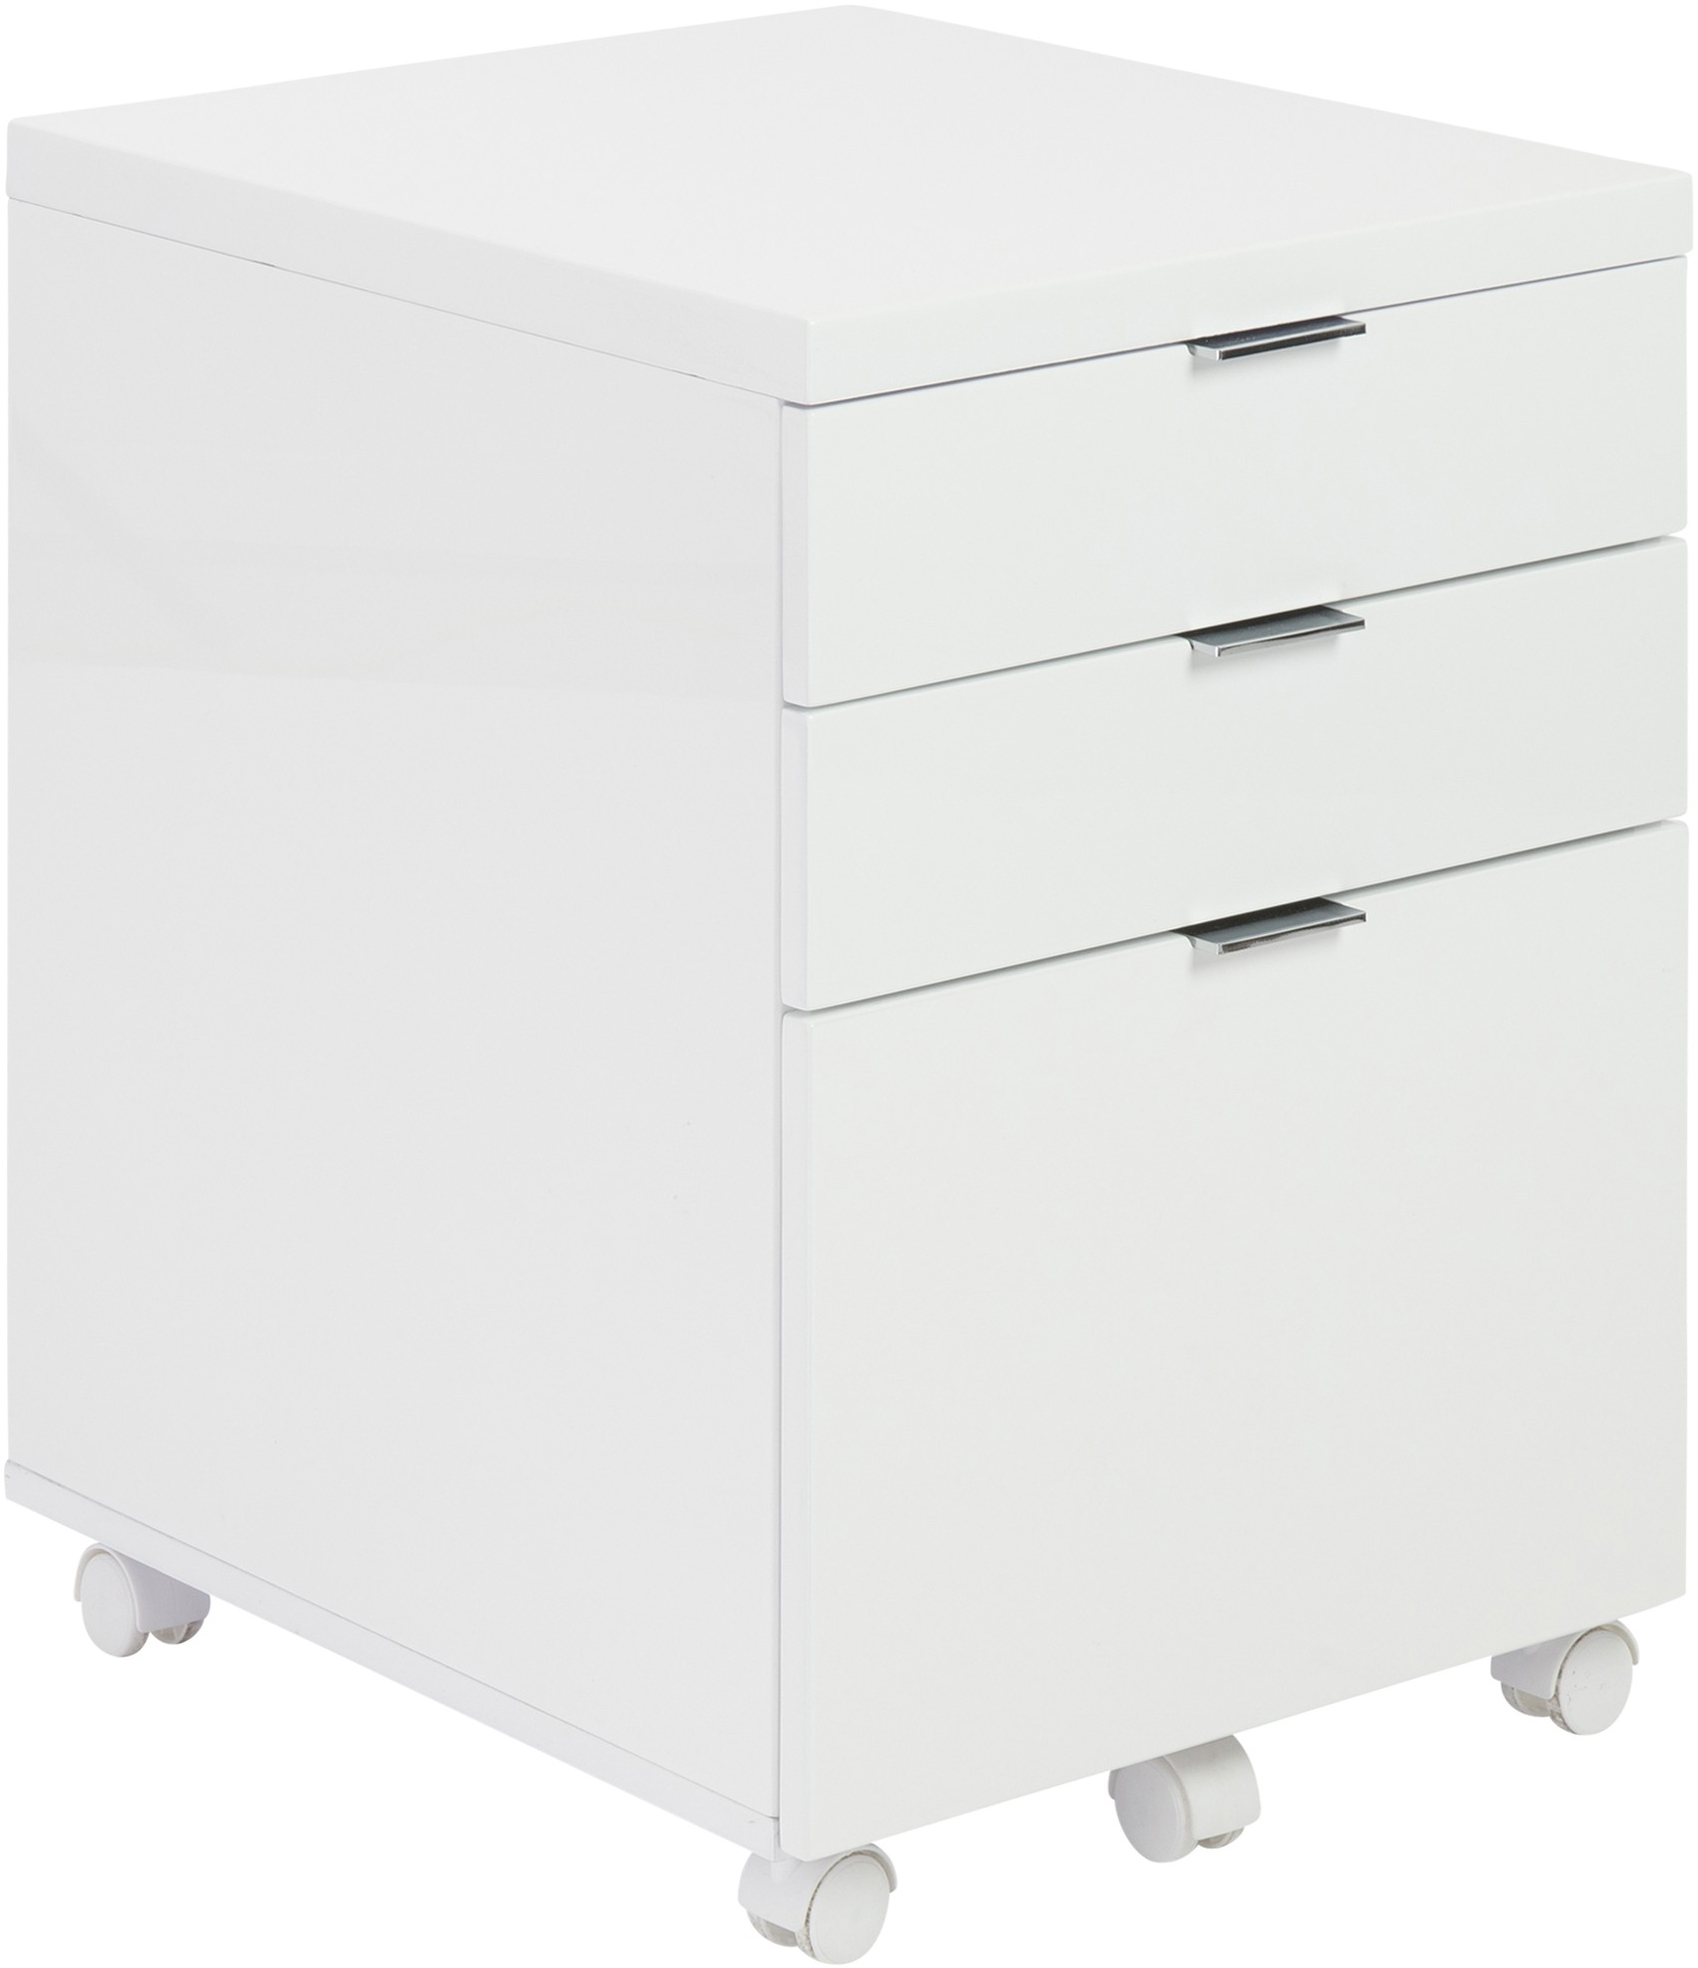 the metro filing cabinet in white